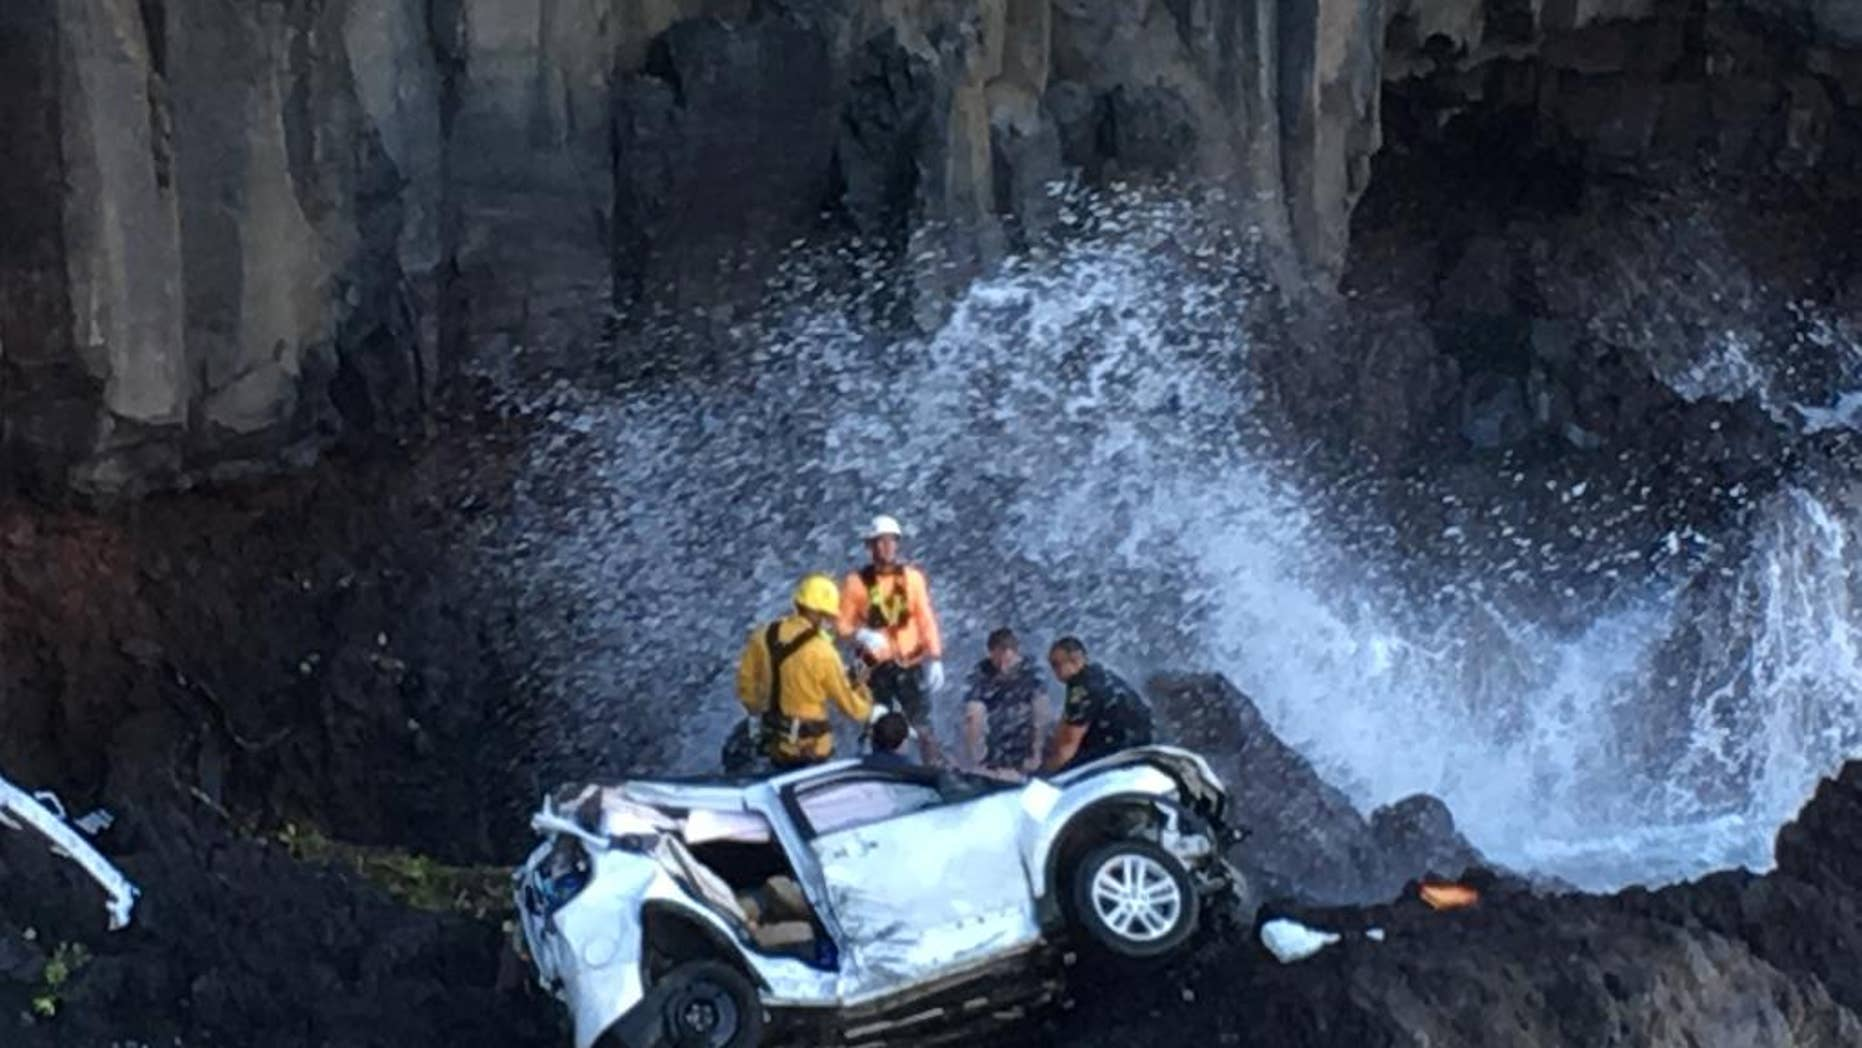 Rescue workers respond to the scene of a car crash in Hawaii.